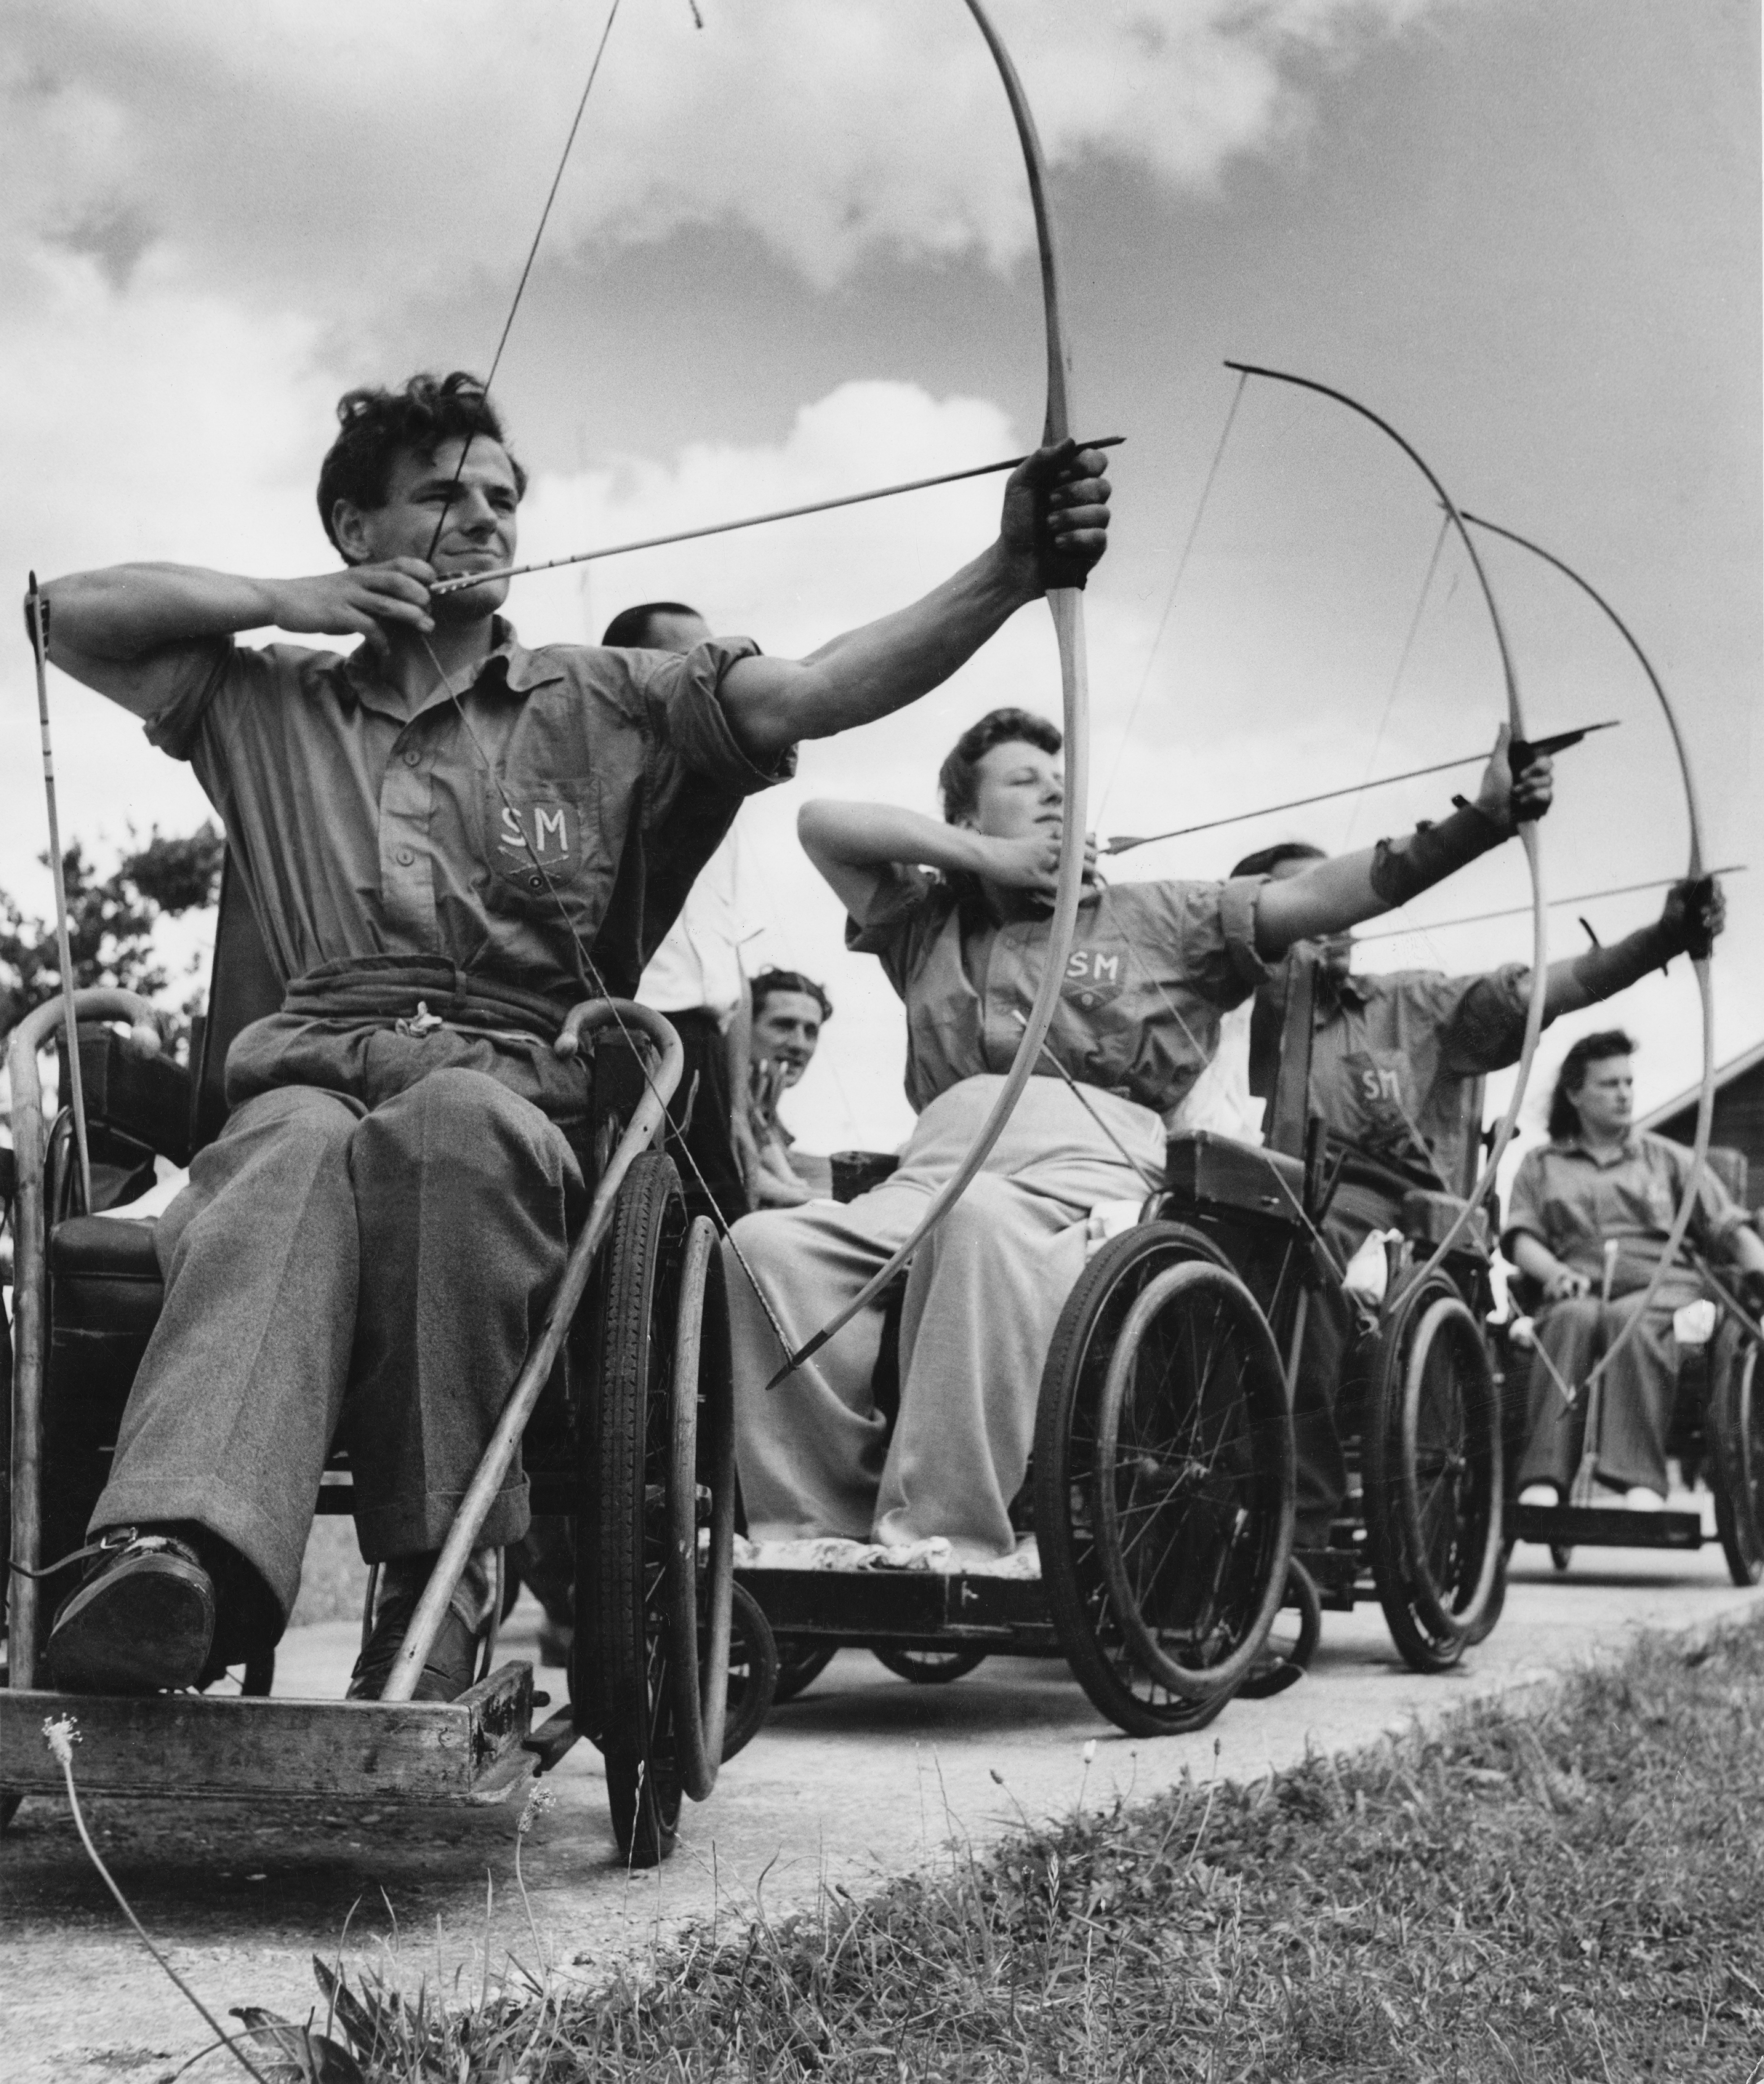 An archery class at the Ministry of Pensions Spinal Centre at Stoke Mandeville Hospital, Buckinghamshire, UK, 1949.